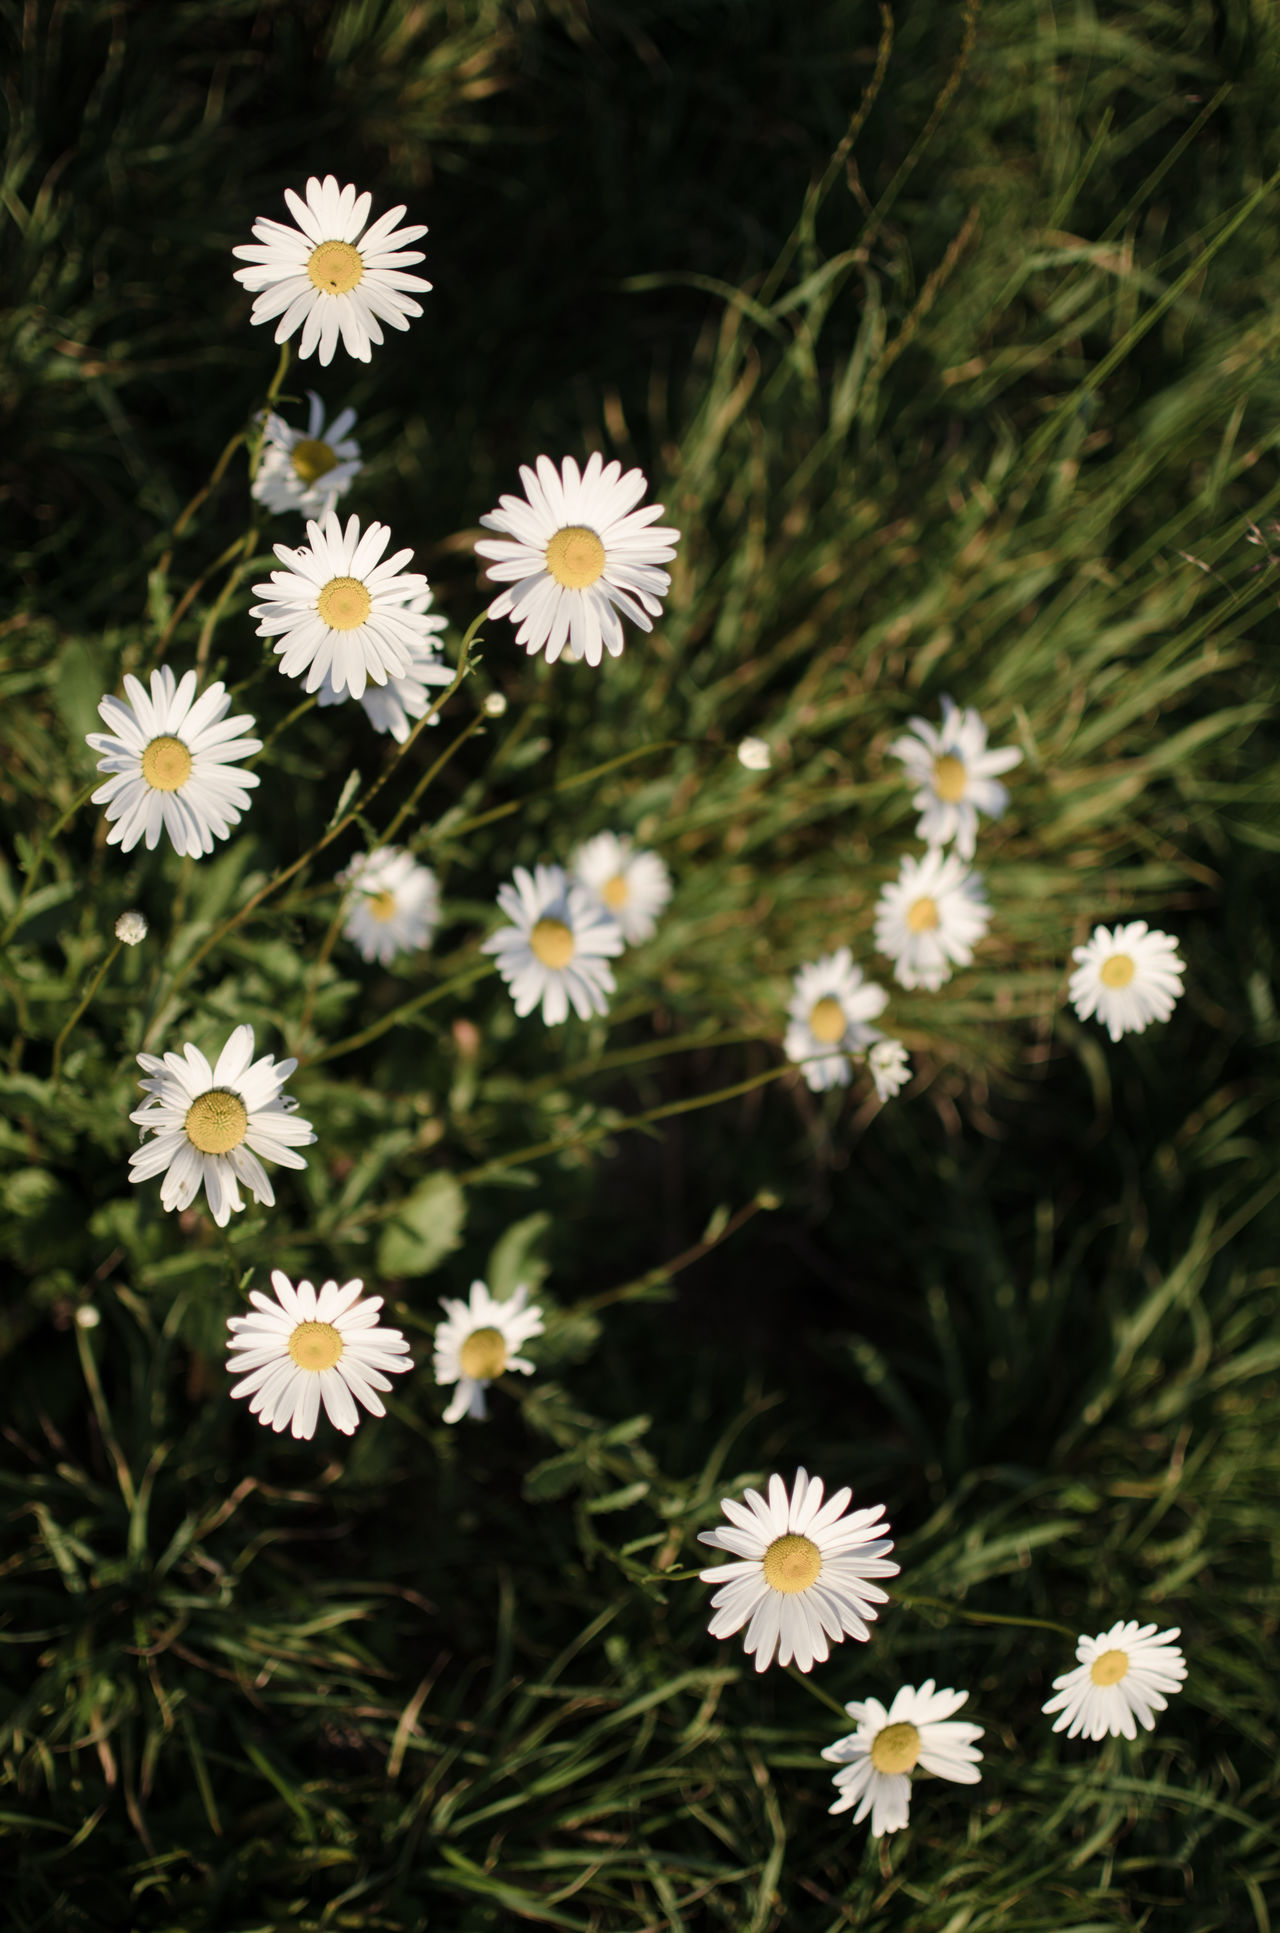 Beauty In Nature Blooming Close-up Daisies Daisy Daisy Daisy Flower Day Flower Flower Head Fragility Freshness Growth Nature No People Outdoors Petal Plant Pollen Season  Spring Sweet White Color